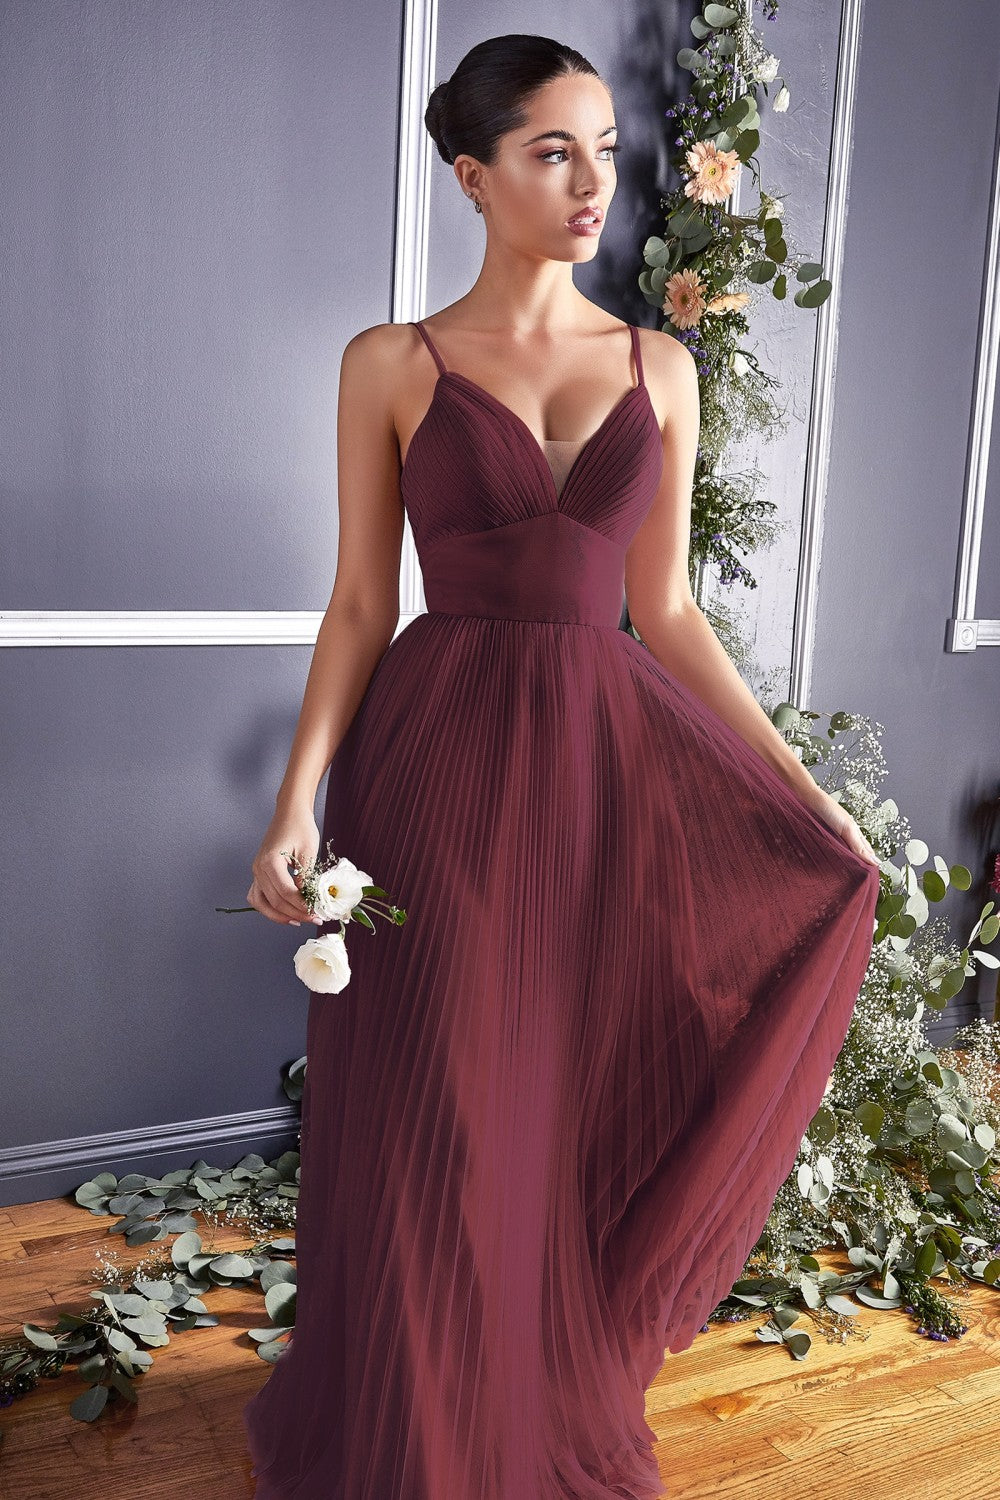 Dahlia Bridesmaid Dress Full Tulle Skirt in Burgundy C184KR-Burgundy  SAMPLE IN STORE